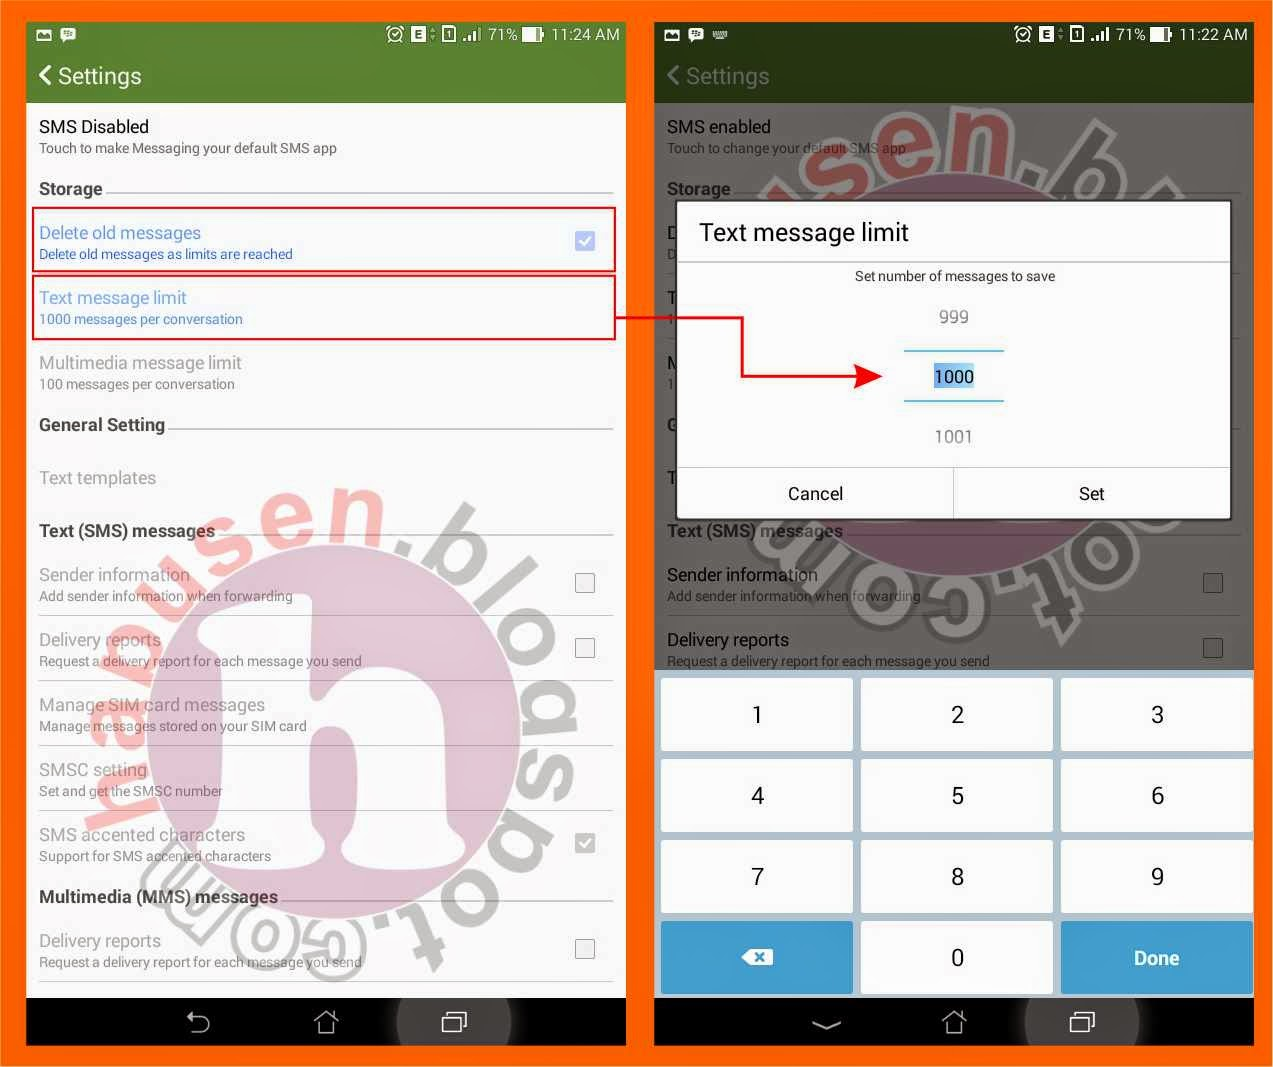 Otomatis menghapus SMS handphone android,menghapus sms otomatis,